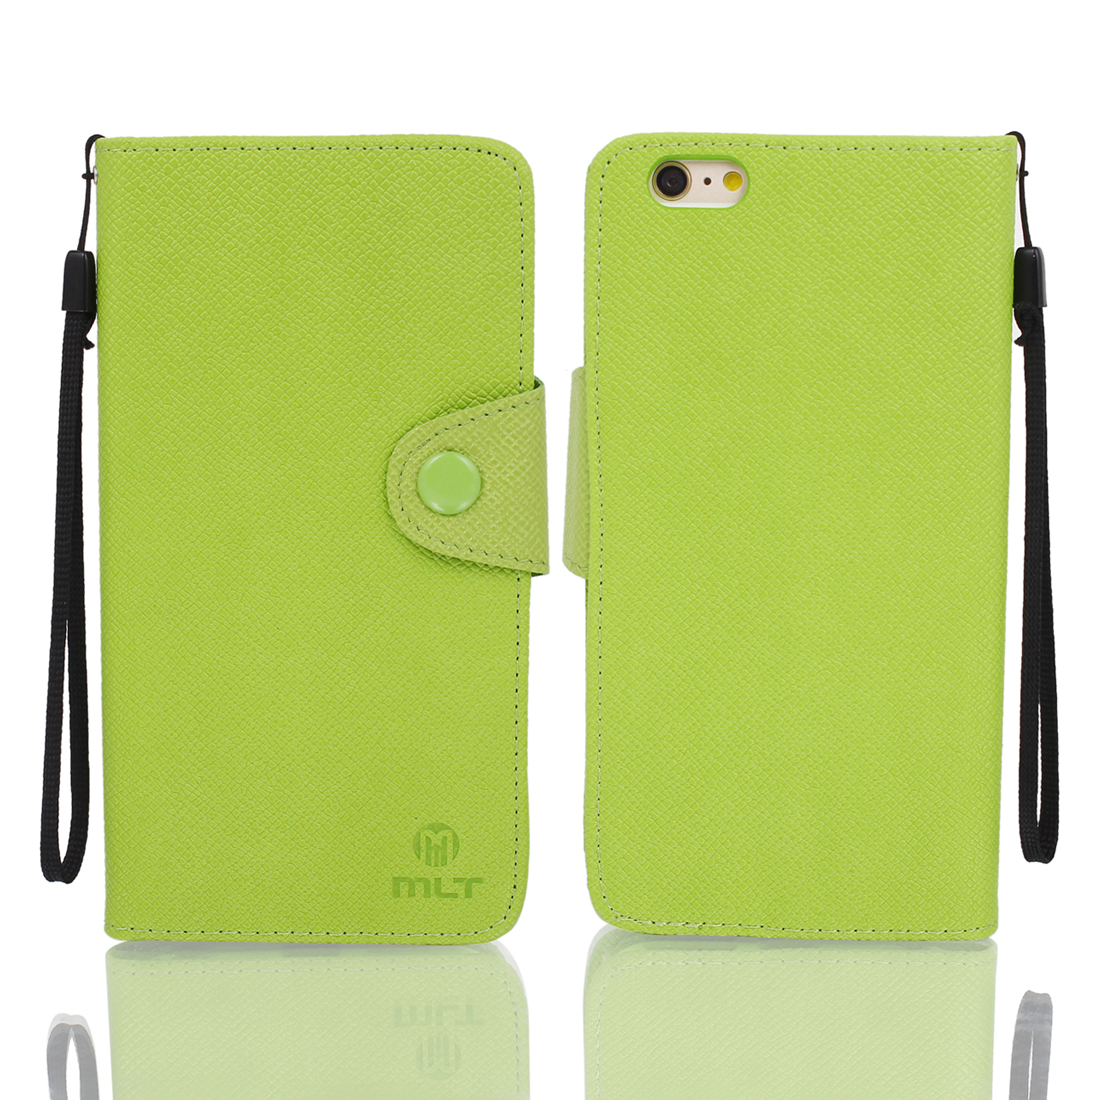 Magnetic Flip PU Wallet Pouch Case Cover Skin Green for iPhone 6 Plus 5.5""